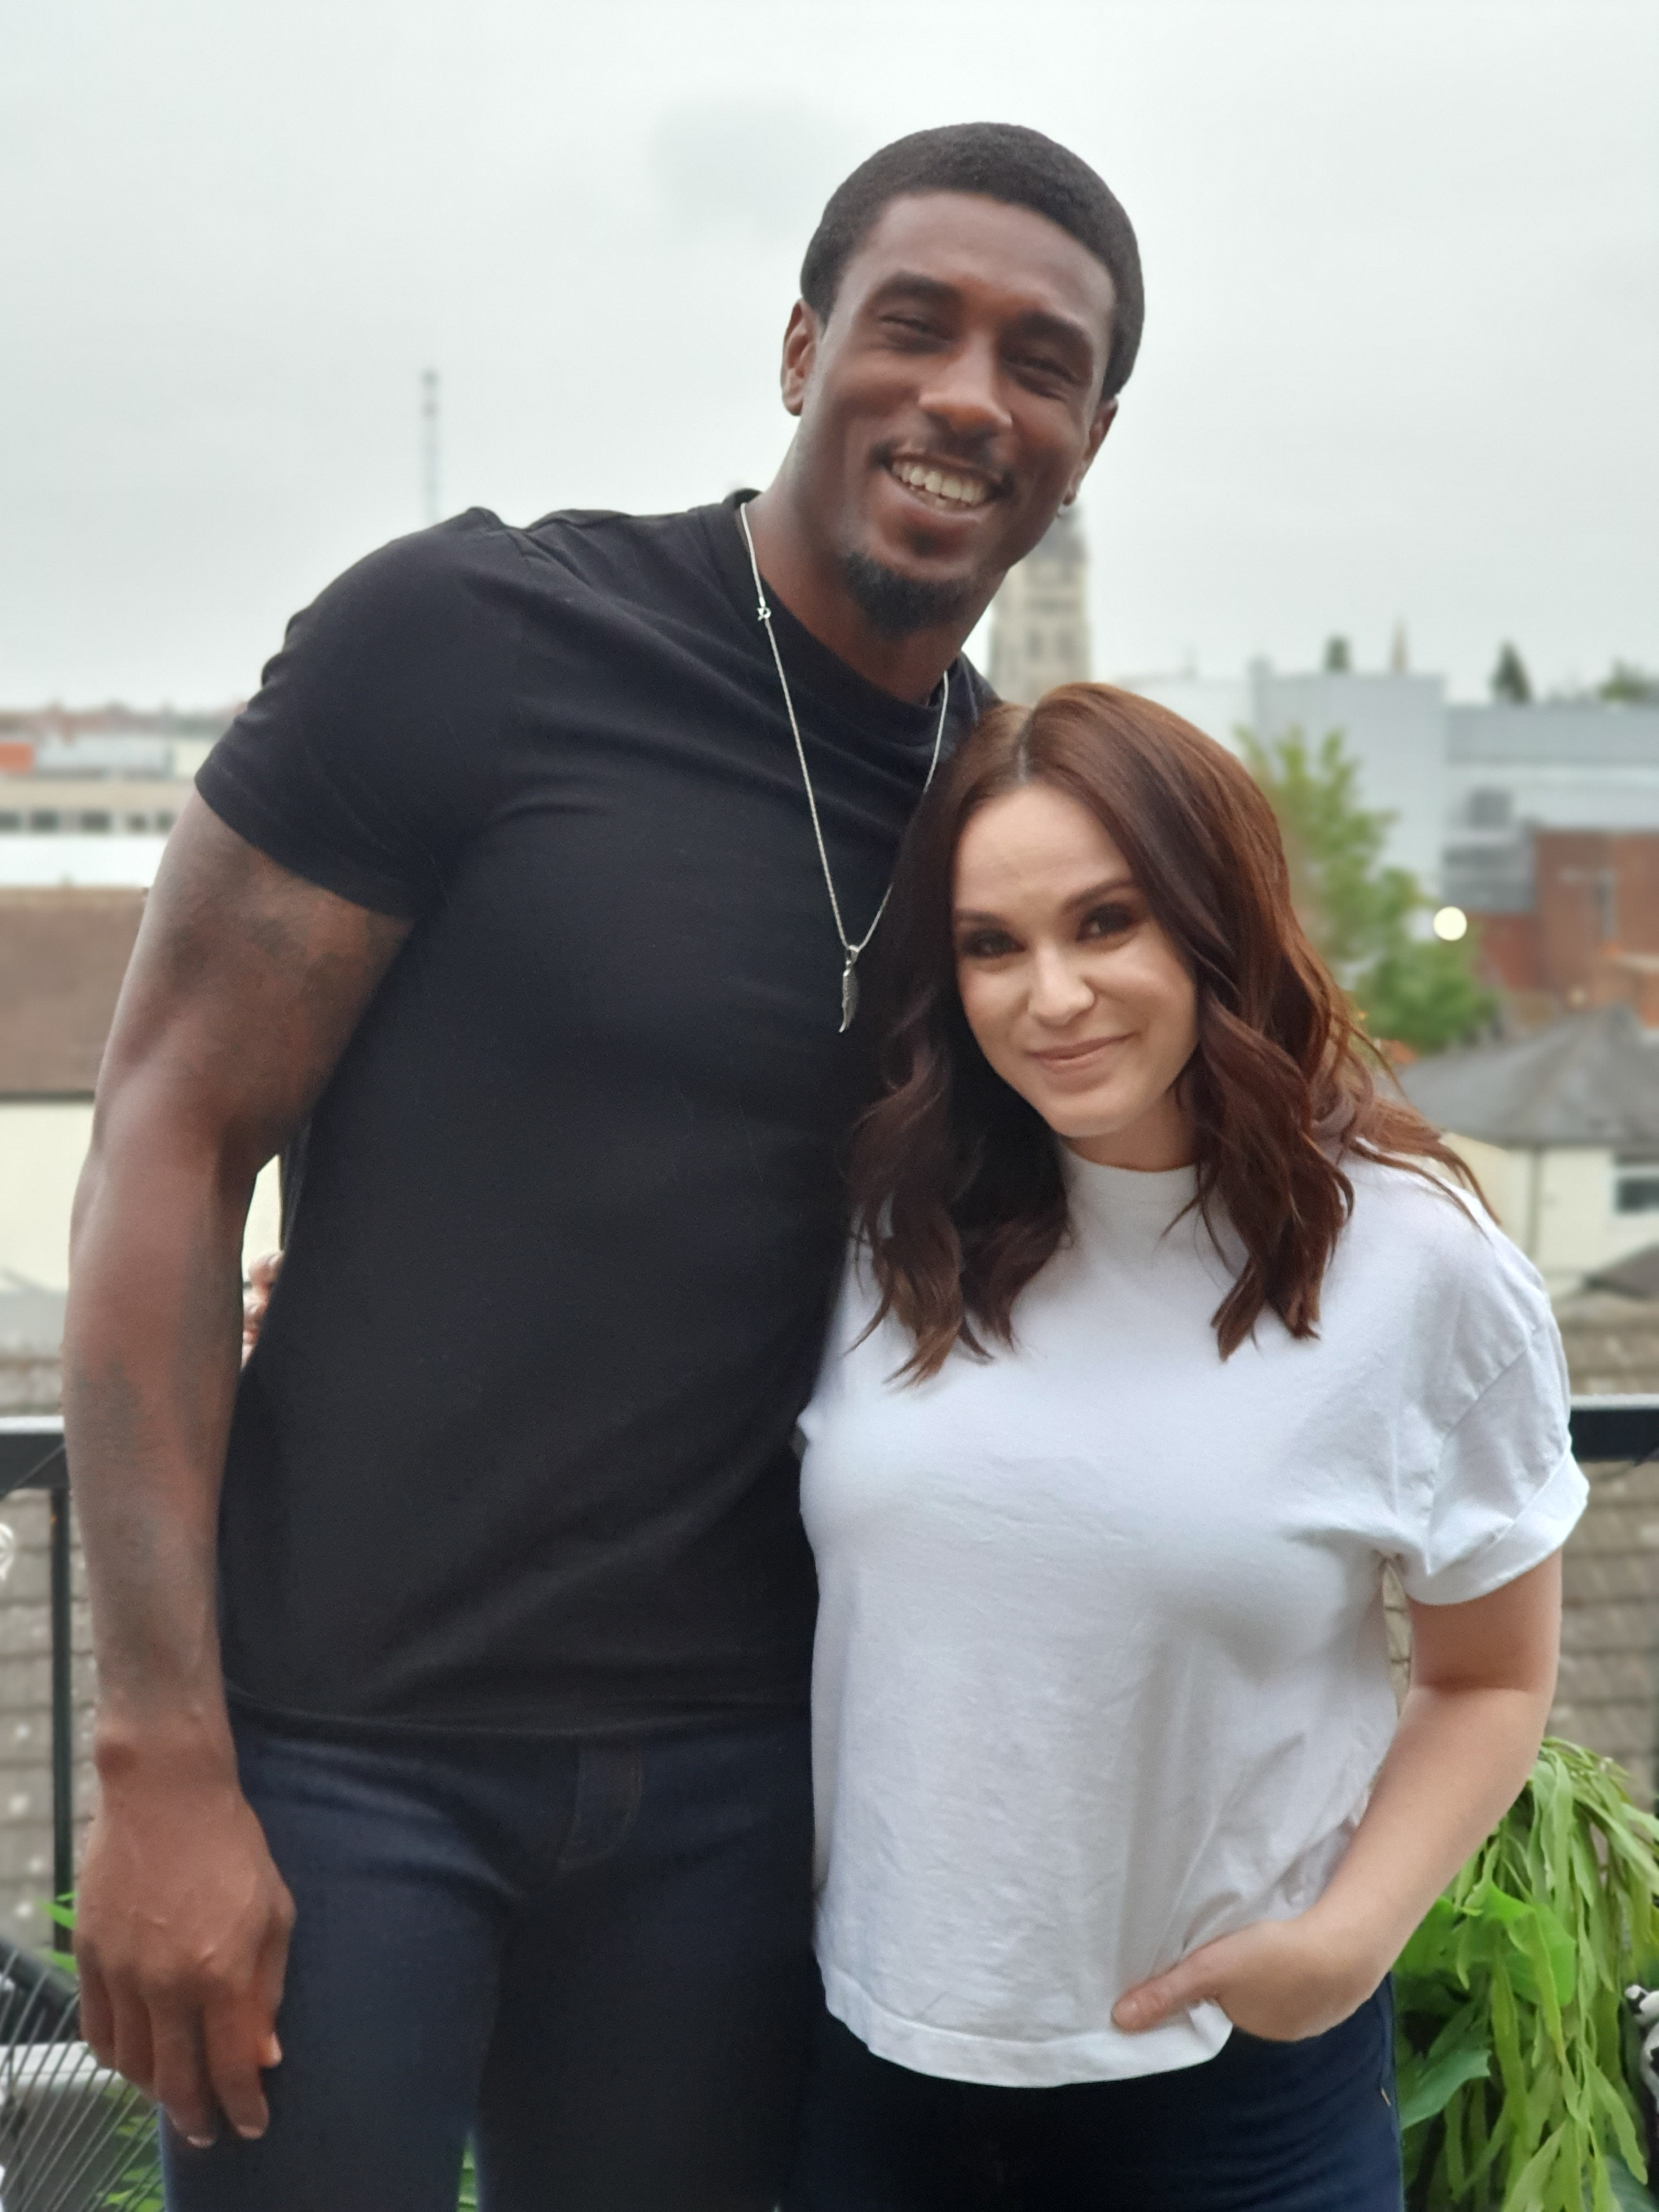 Ovie Soko and Vicky Pattison